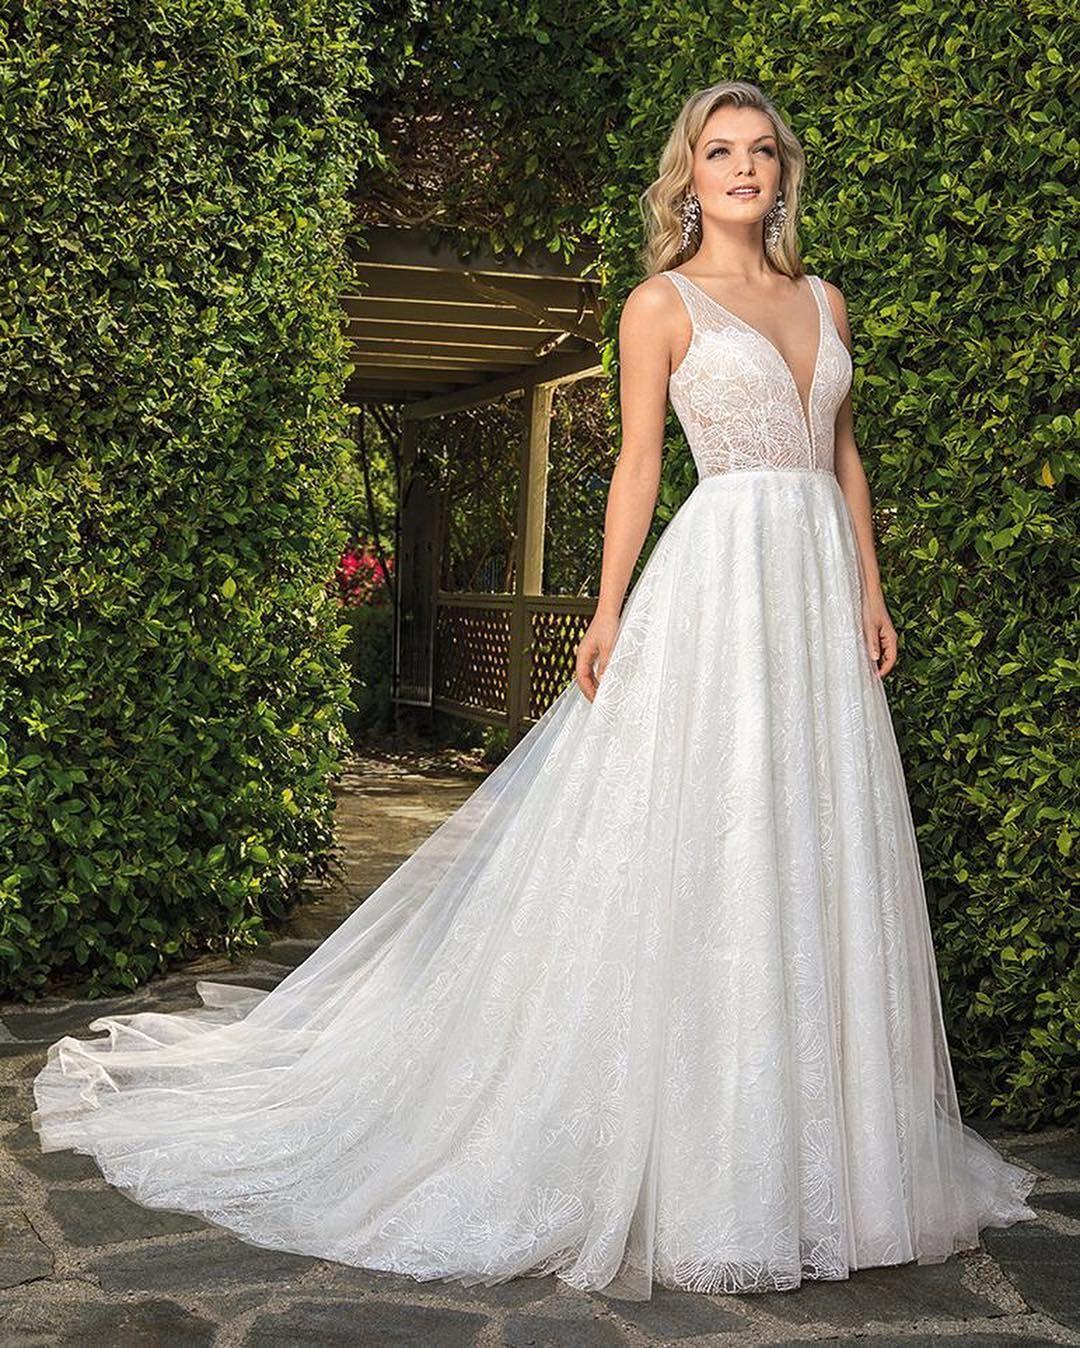 Casablanca Bridal On Instagram Style 2353 Kayla Is Our Heart